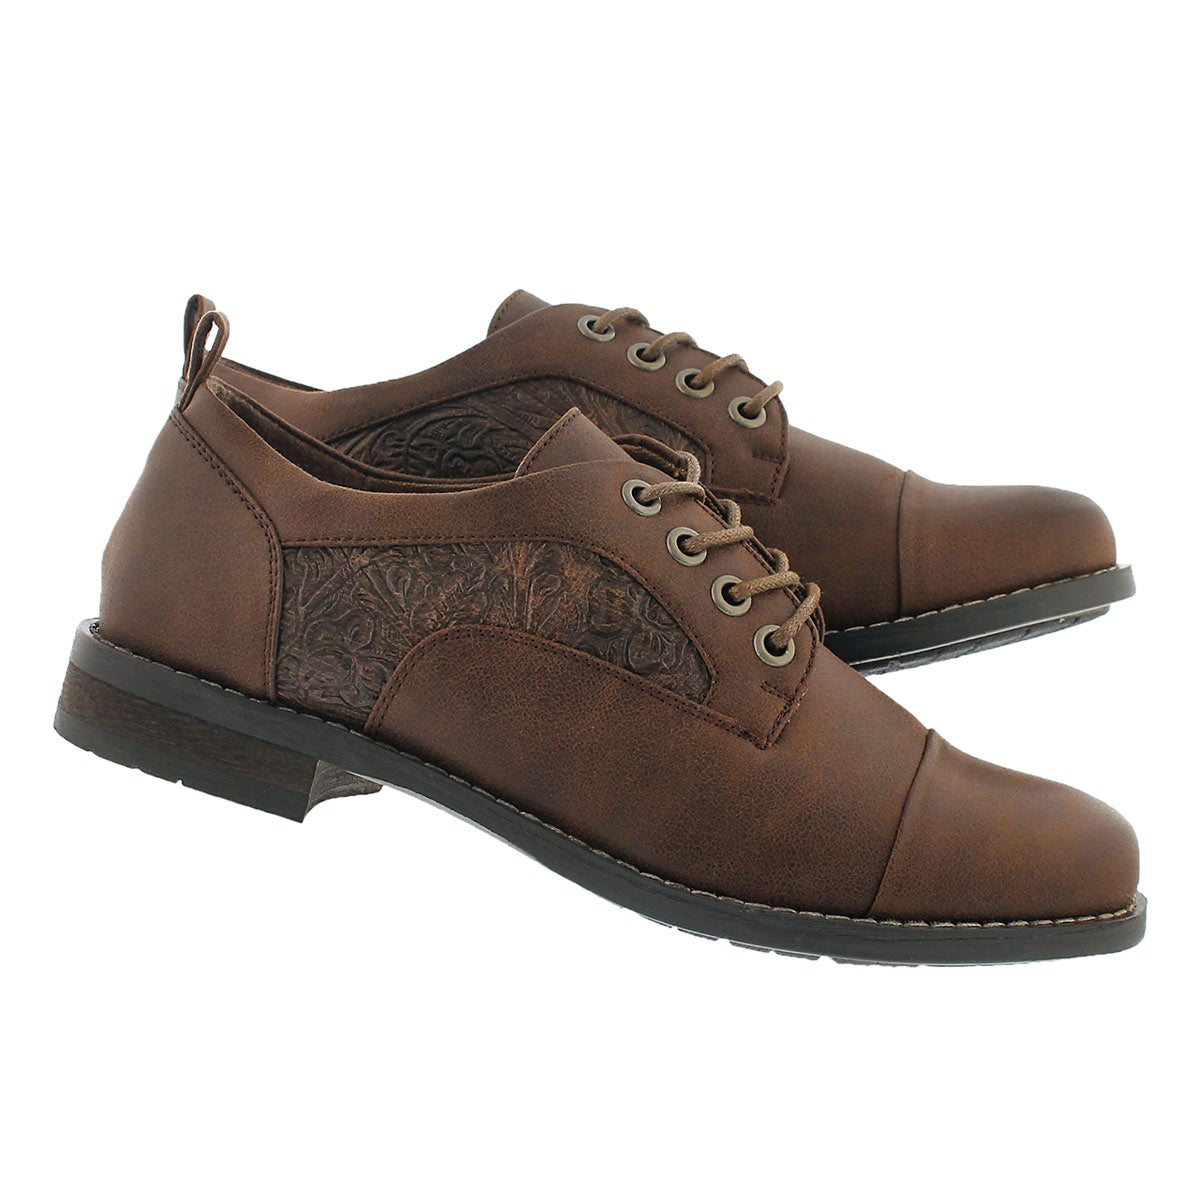 Lds Blanchette tan lace up oxford